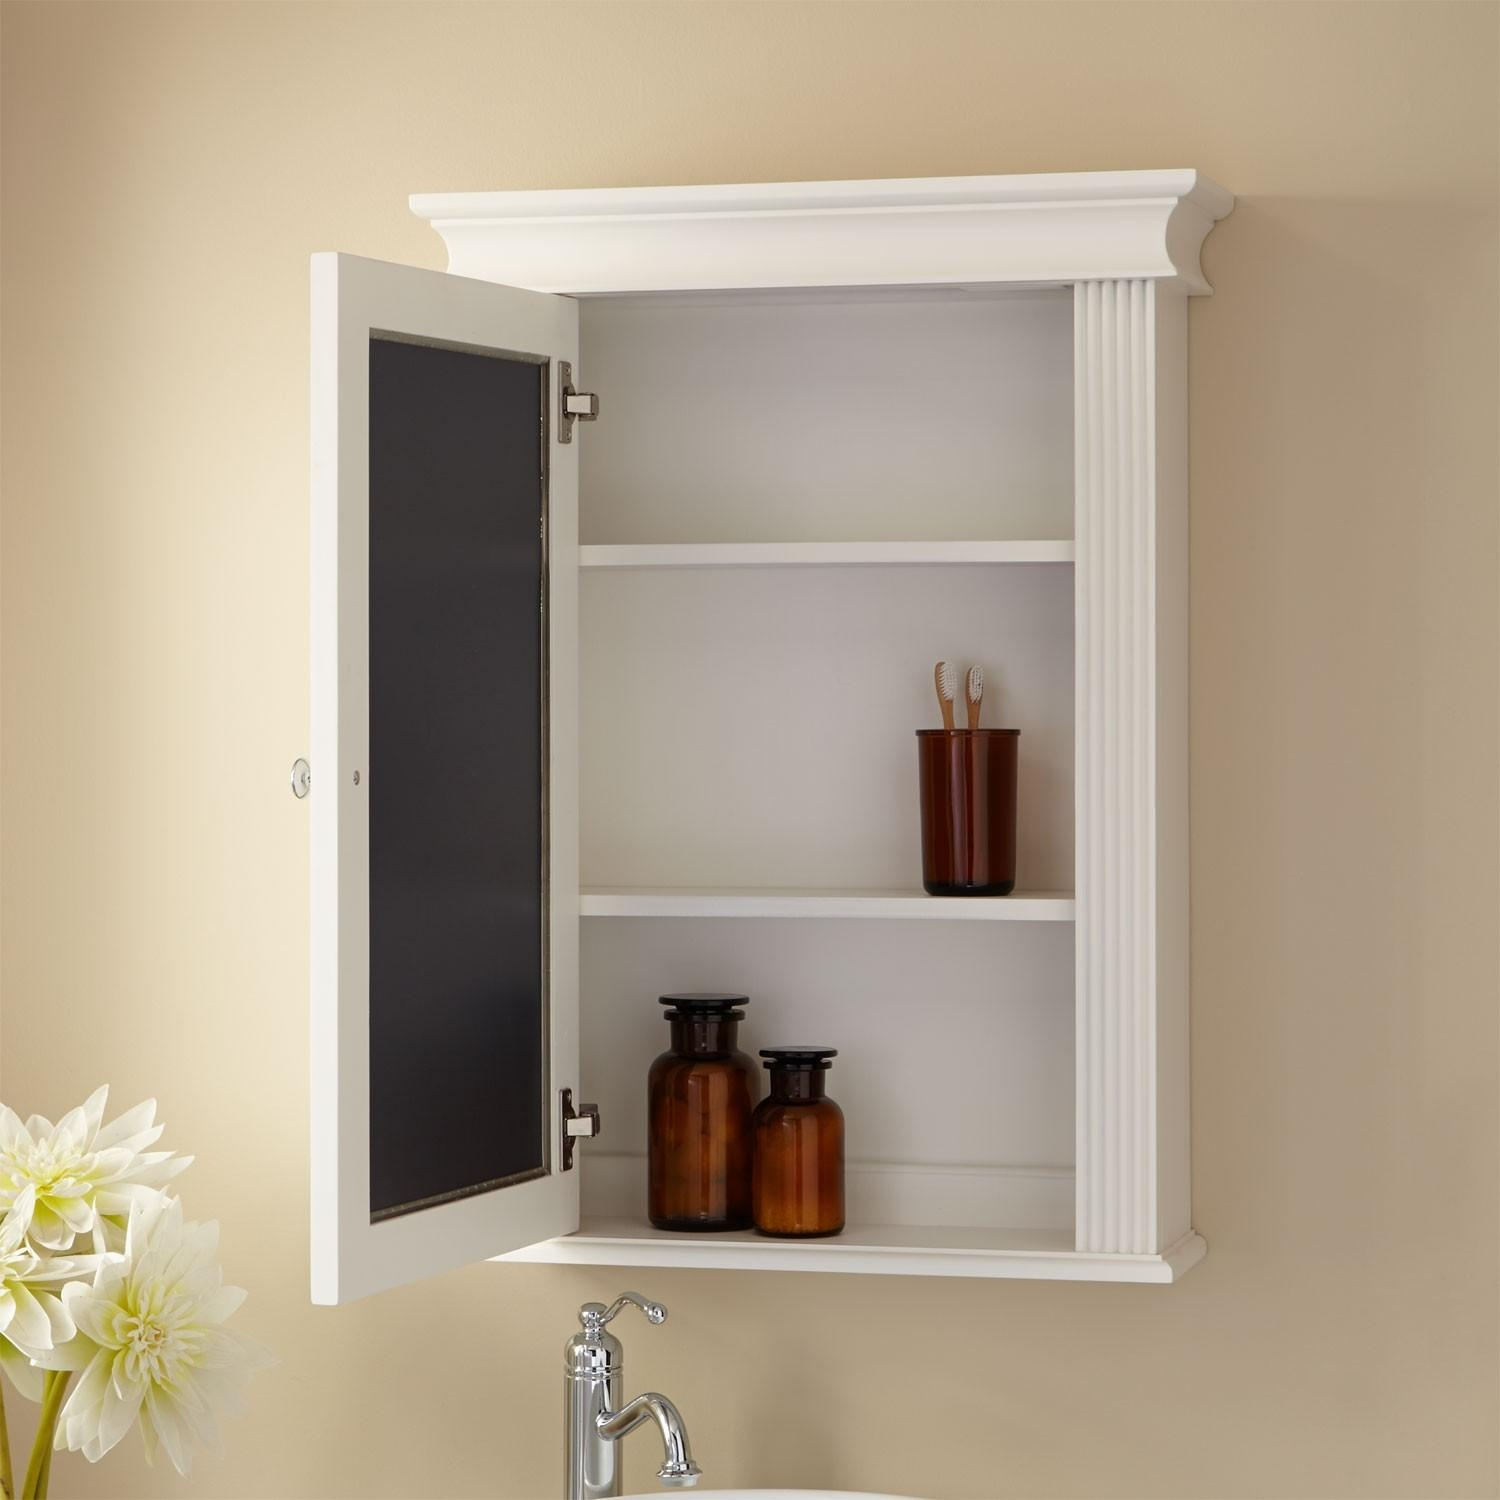 Bathrooms Design : Recessed Medicine Cabinets With Mirrors For Throughout Bathroom Cabinets Mirrors (View 10 of 20)